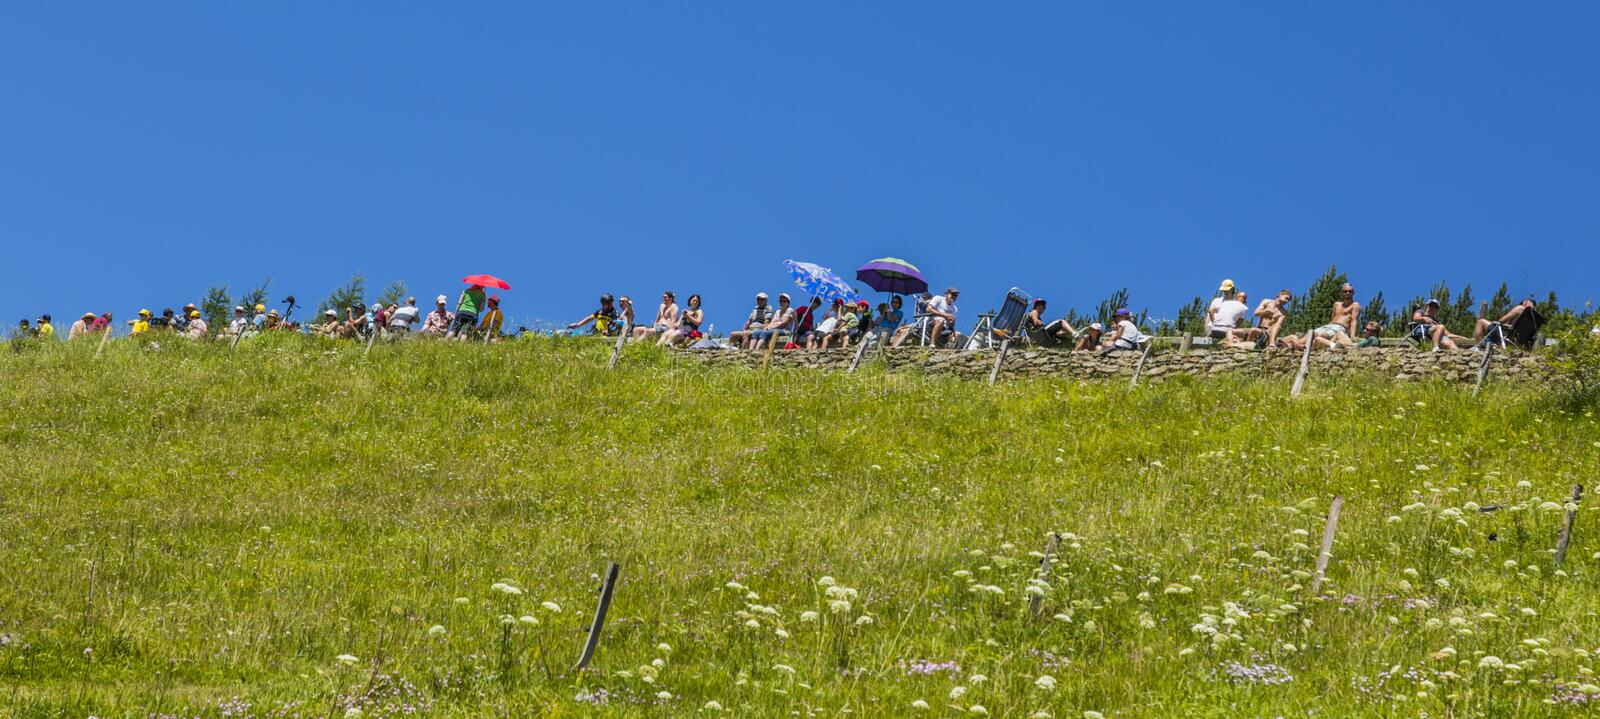 Espectadores nas montanhas - Tour de France 2014 imagem de stock royalty free